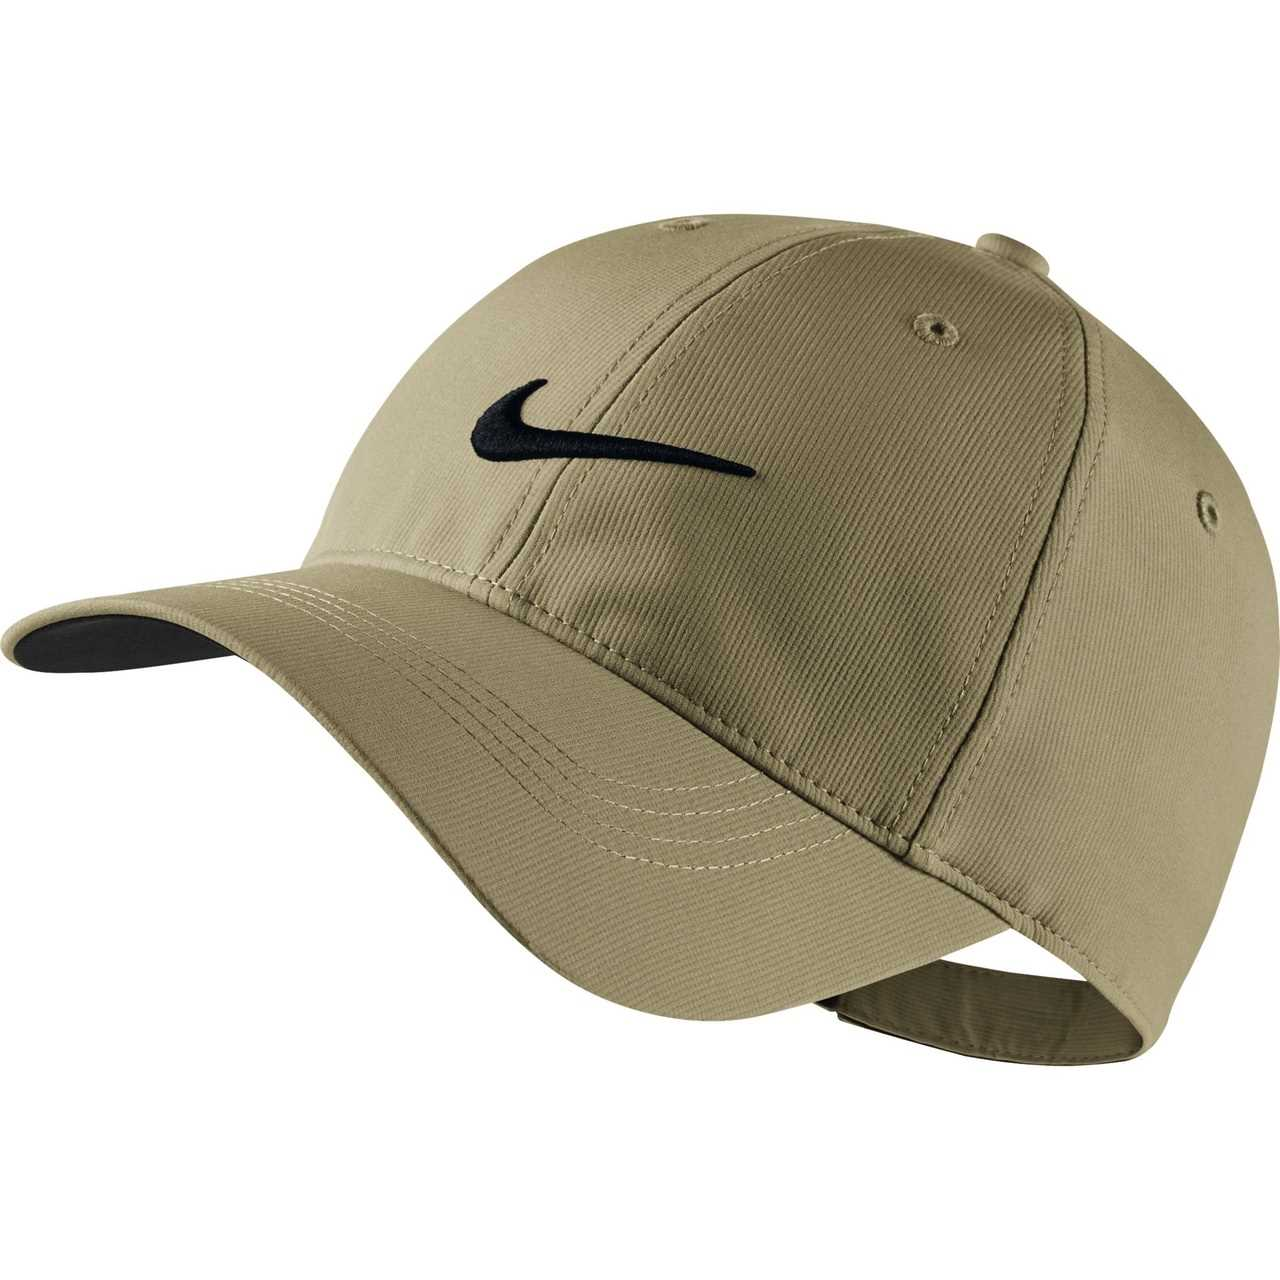 3912ce14736 Nike Golf Legacy 91 Tech Adjustable Hat (Dark Grey White) - Khaki Black